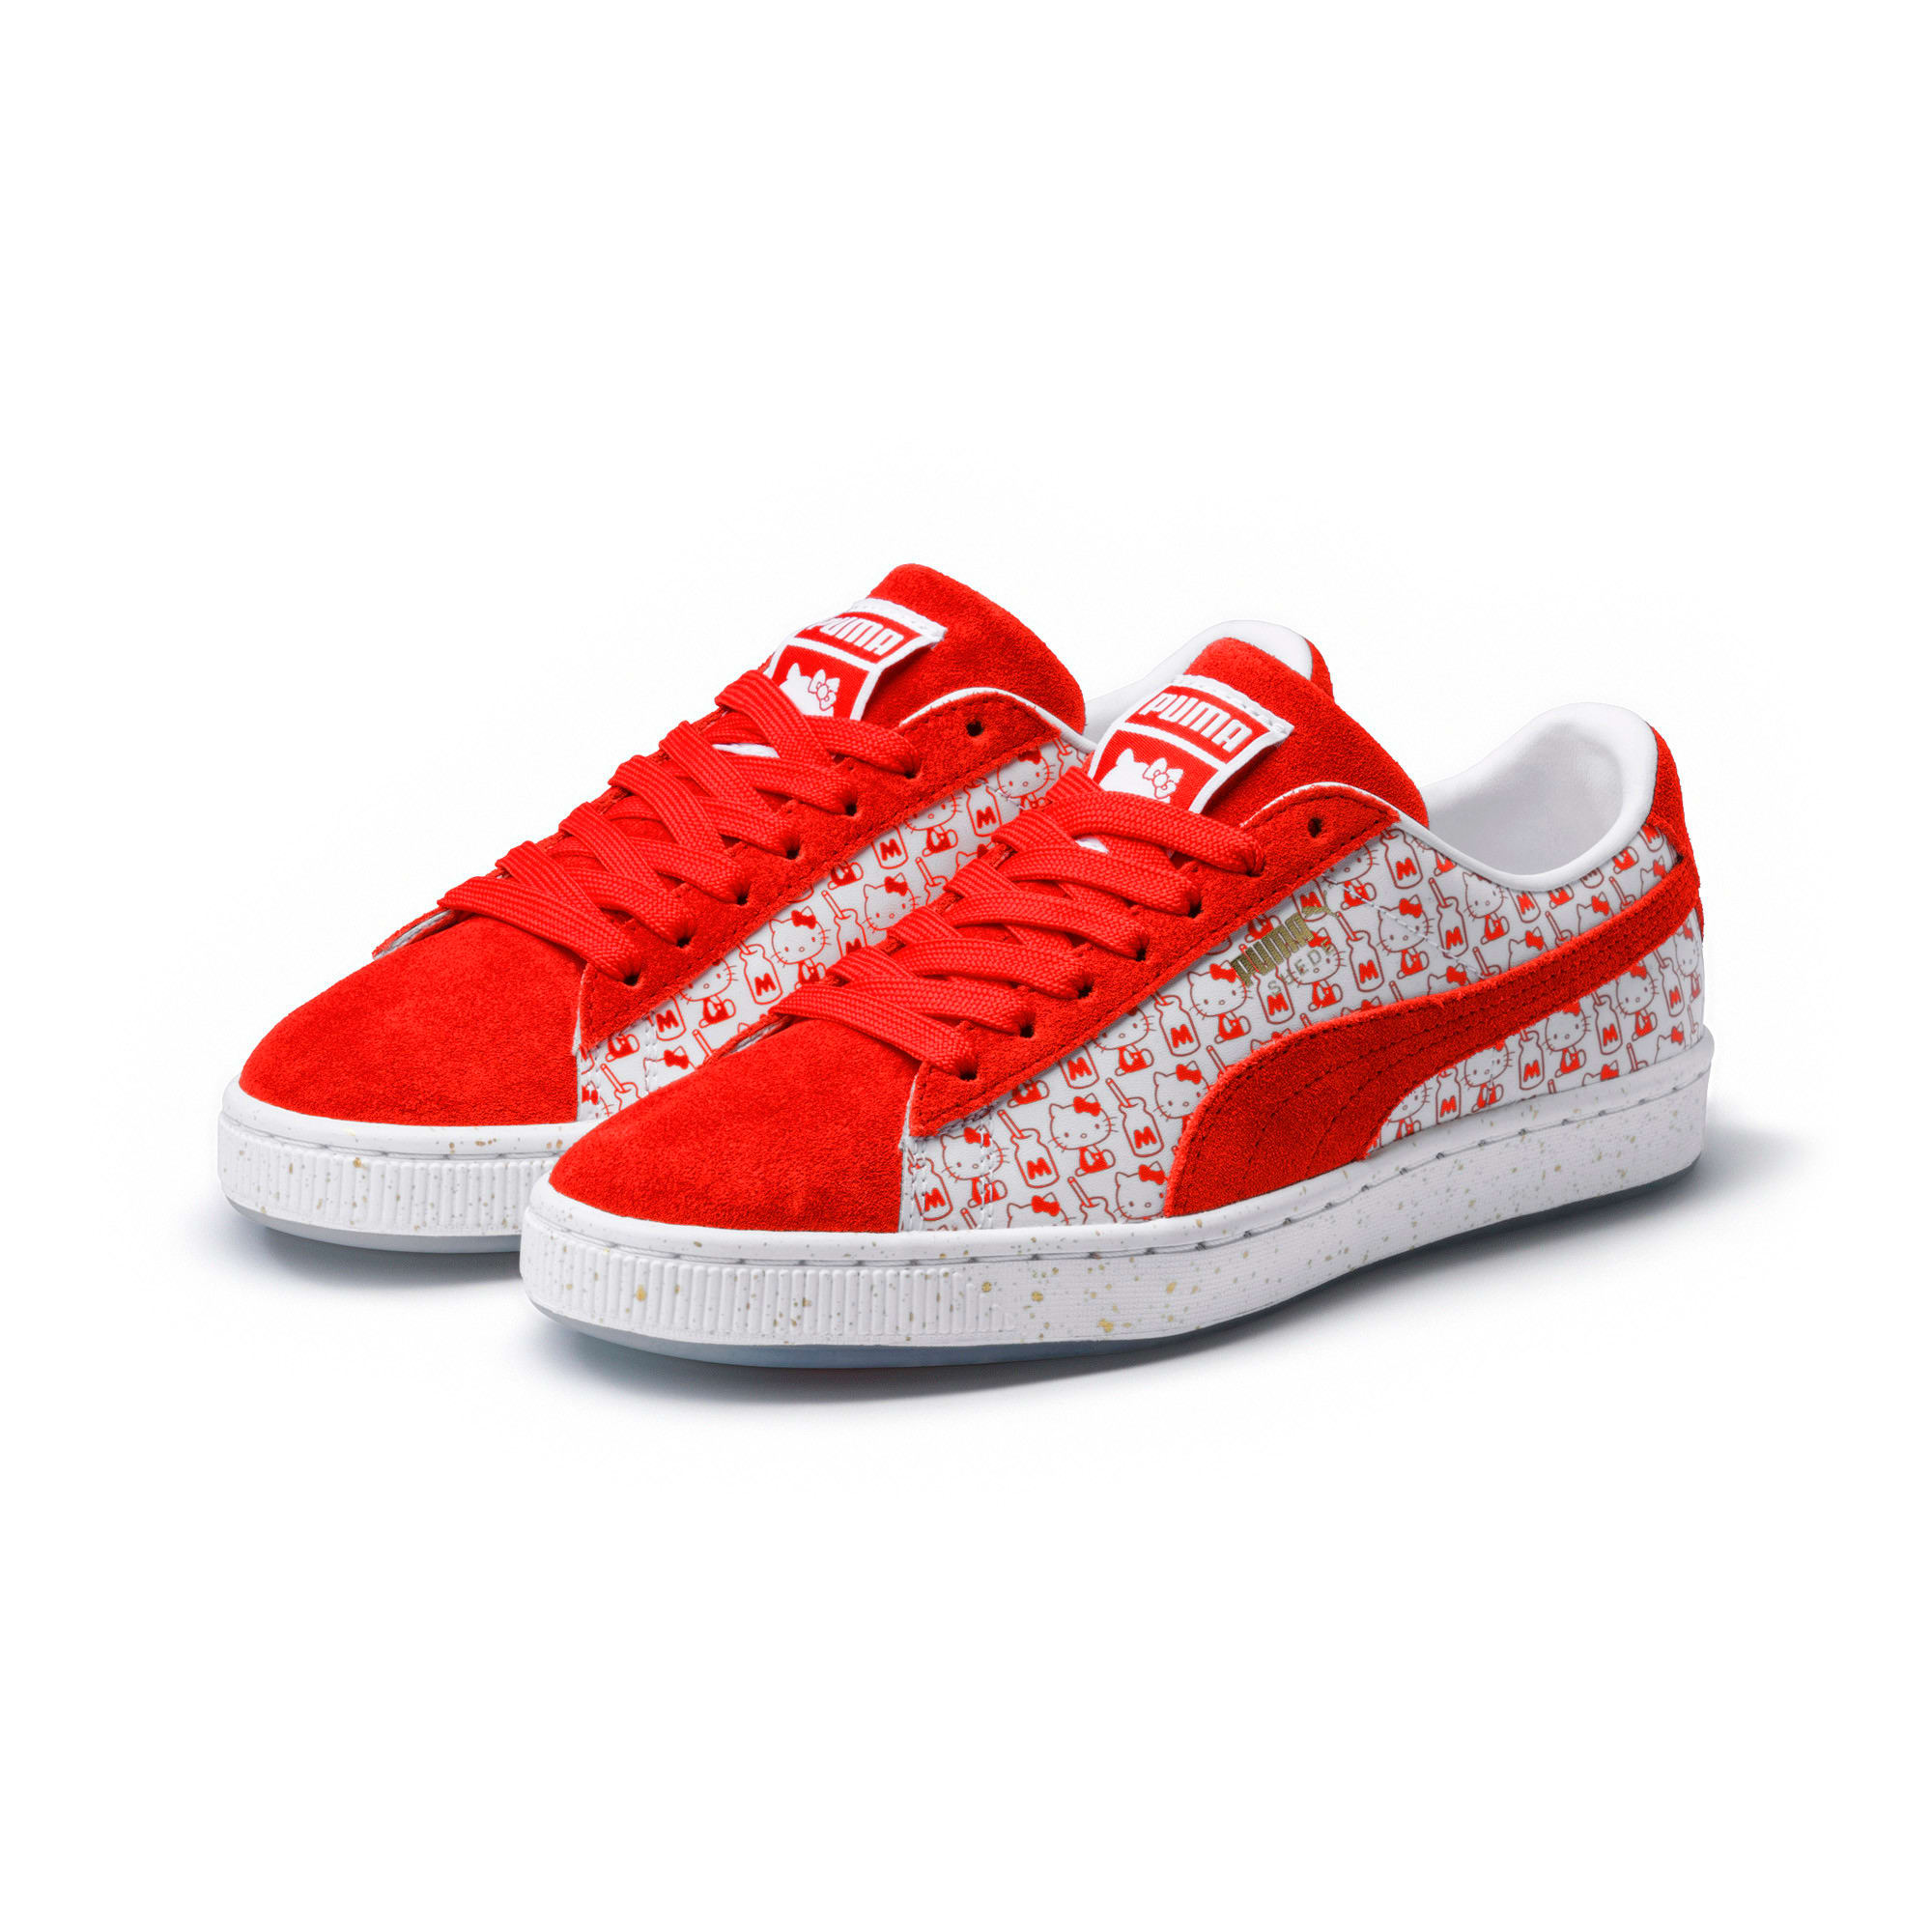 2puma mujer suede hellow kity